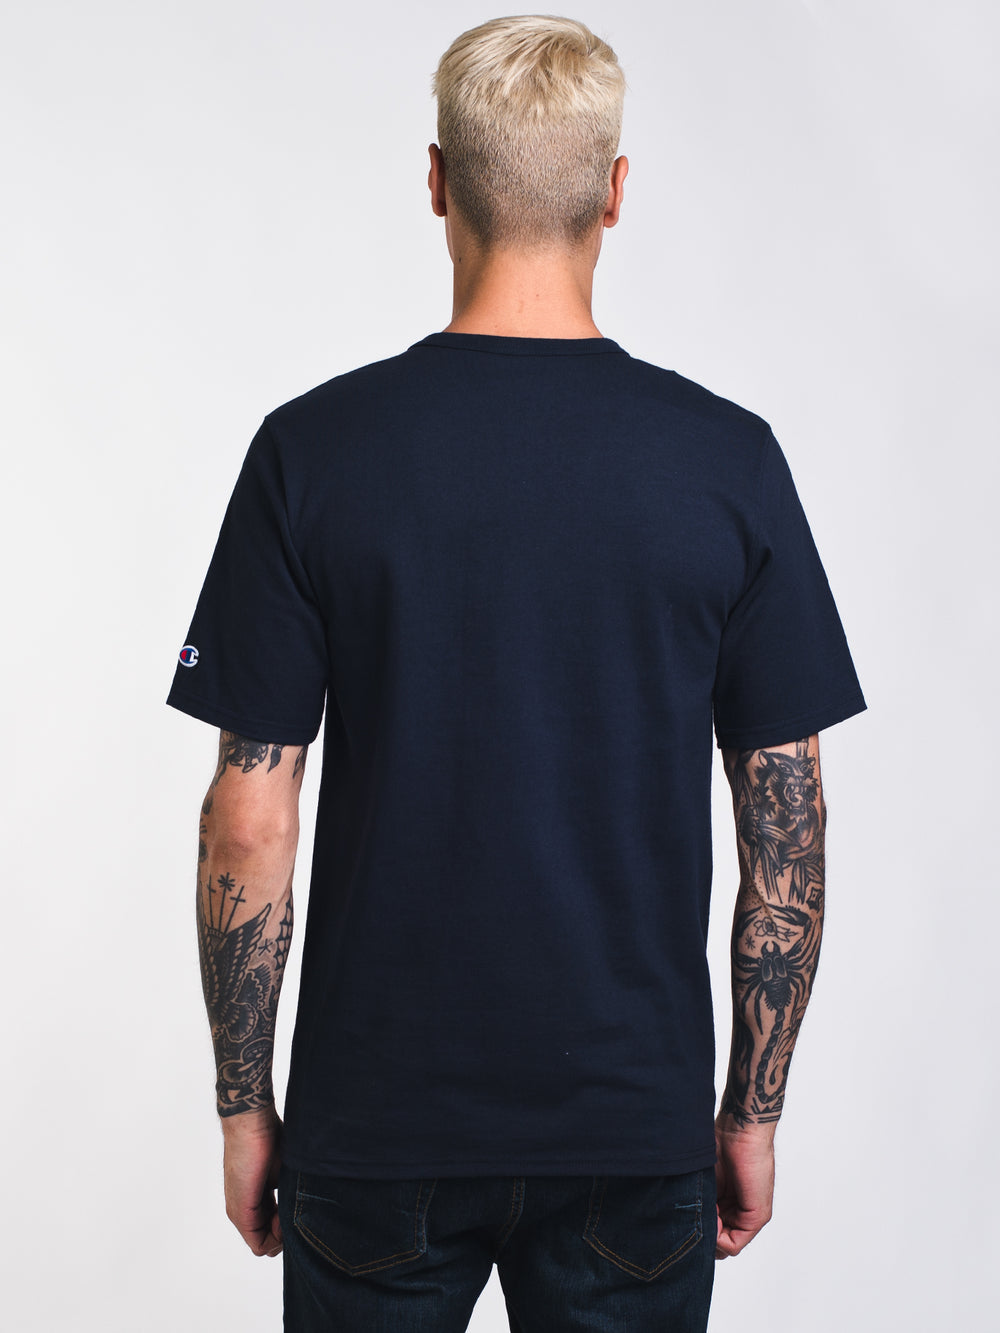 MENS HERITAGE SHORT SLEEVE T-SHIRT - BLACK